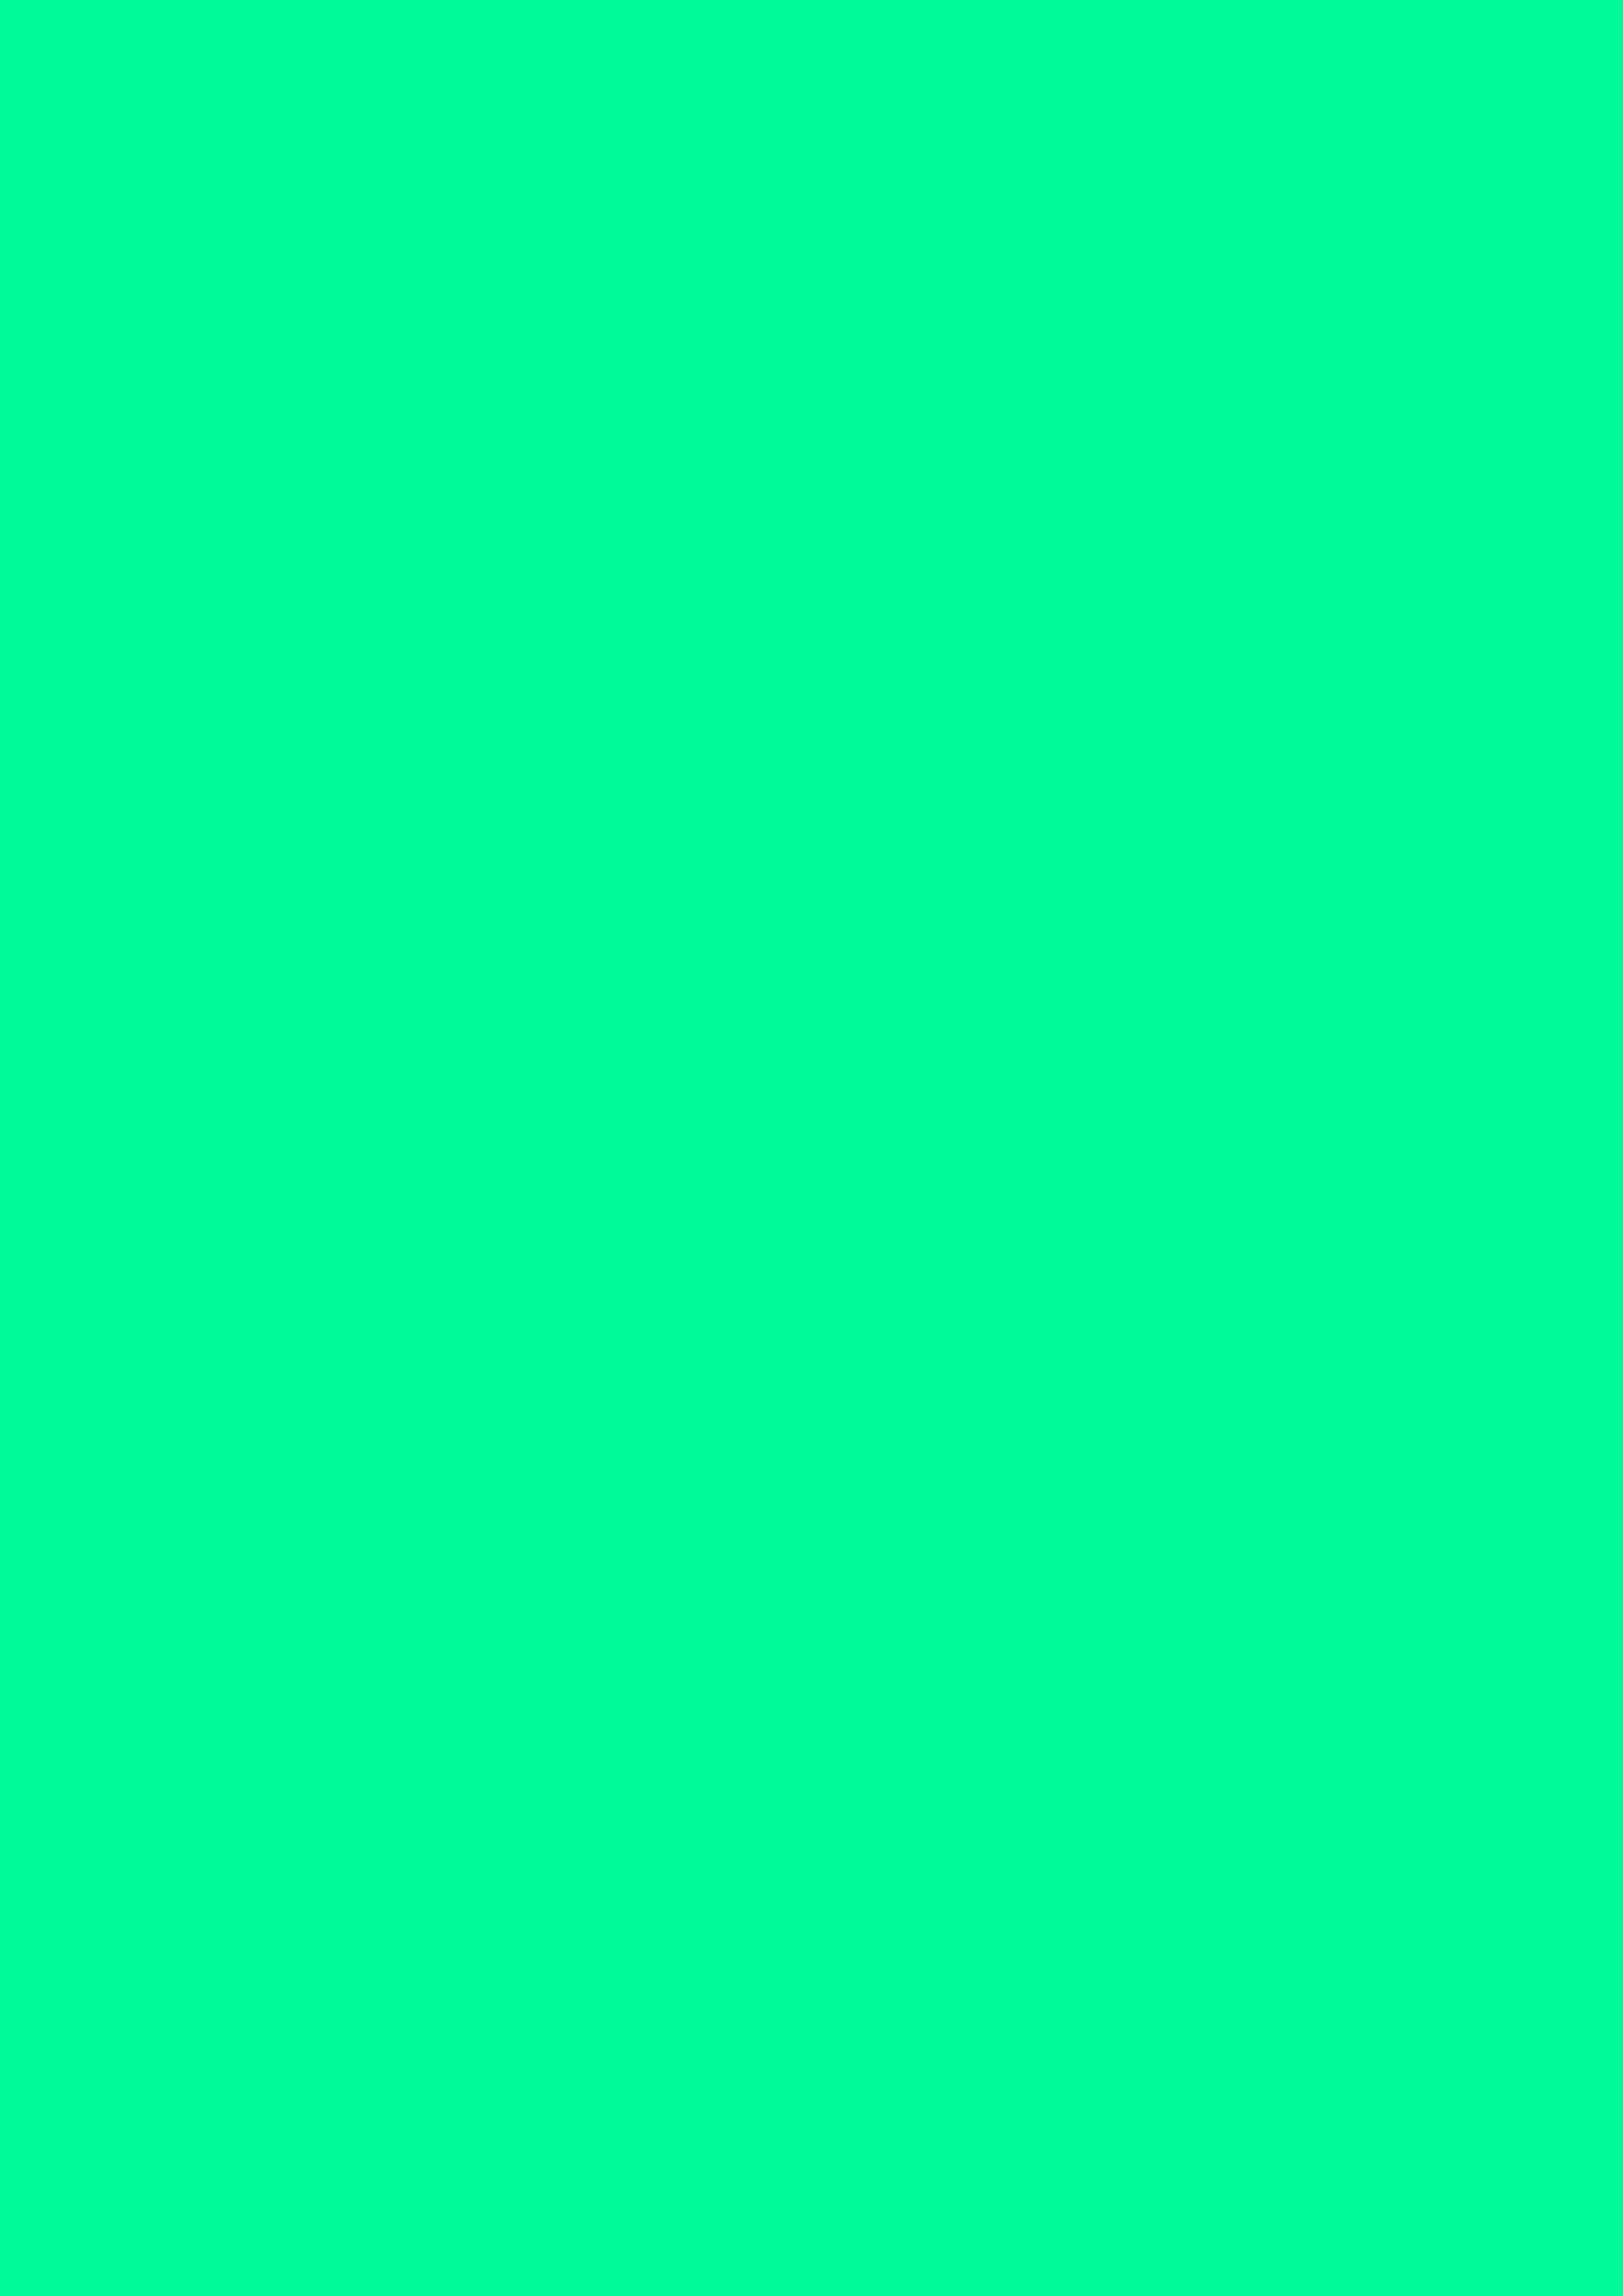 2480x3508 Medium Spring Green Solid Color Background